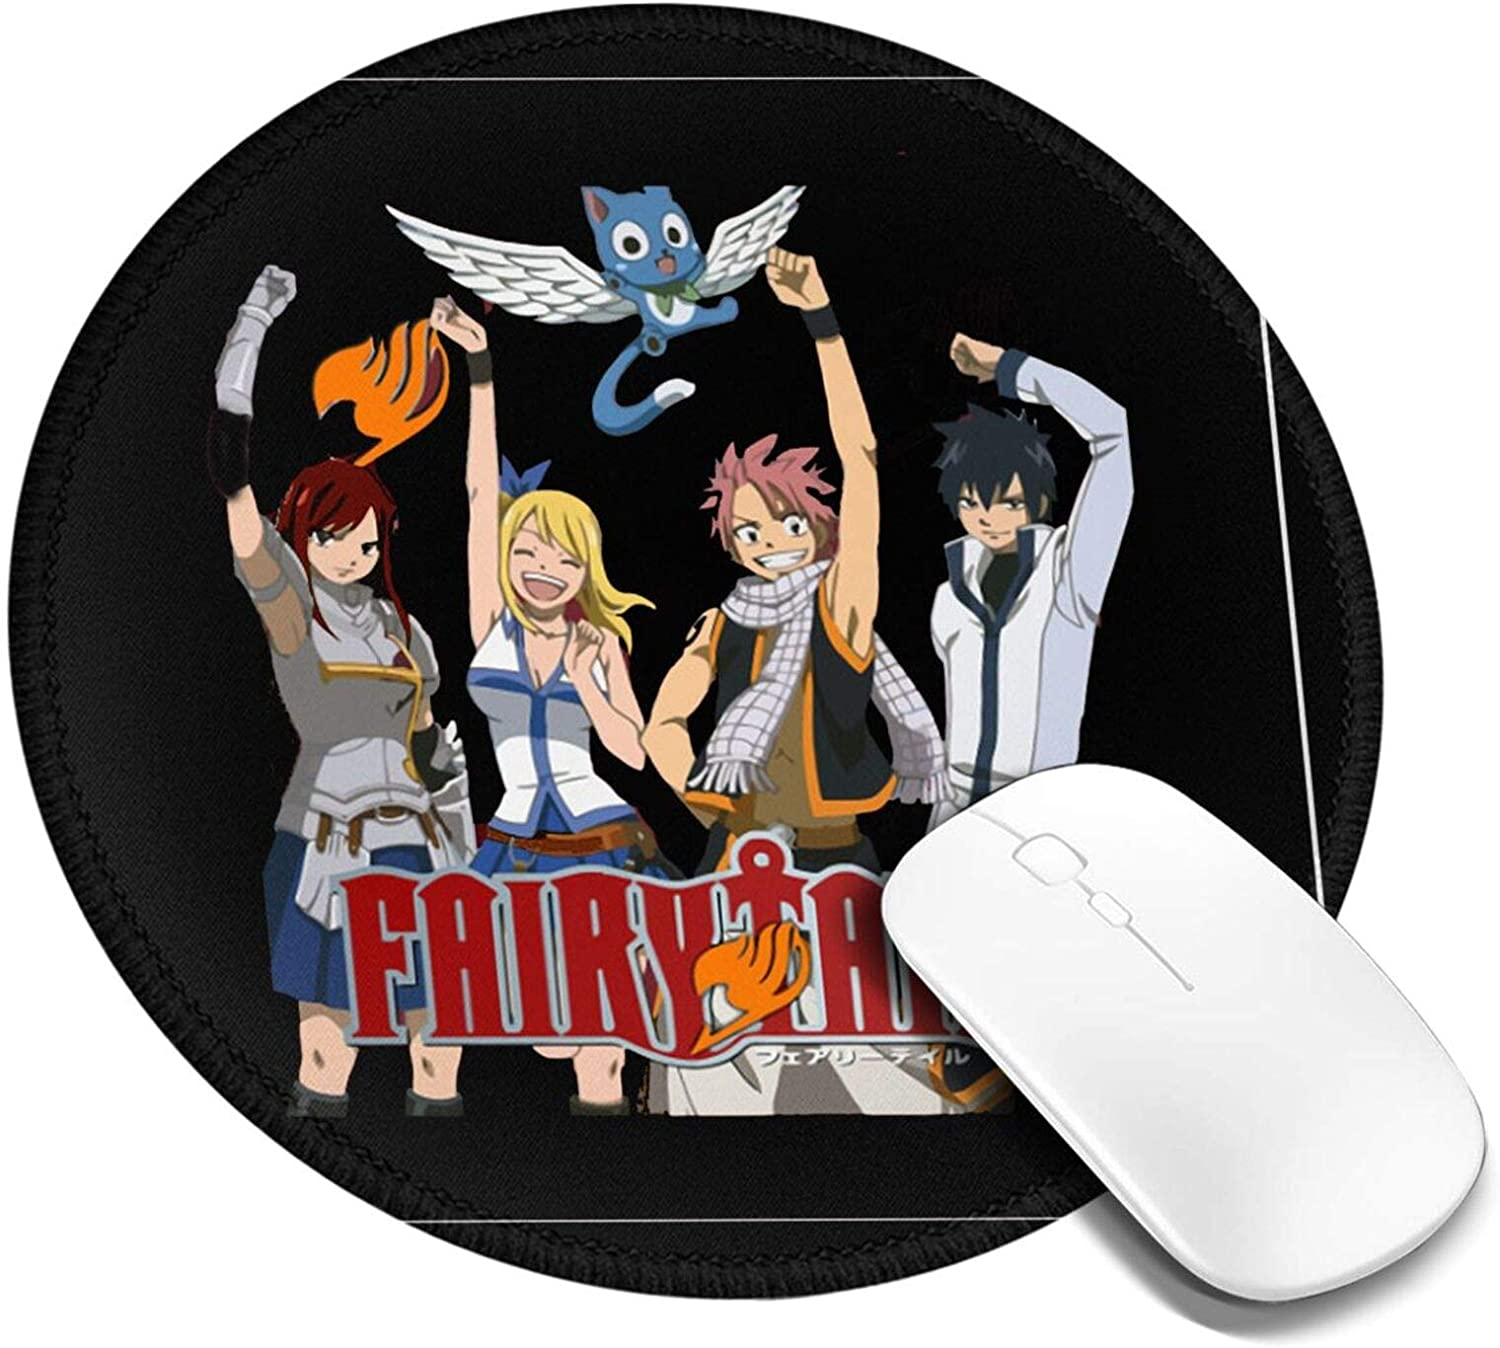 Bemostrich Fairy Tail Manga Comic Cute New sales Mouse Round Pad Personal Sale special price